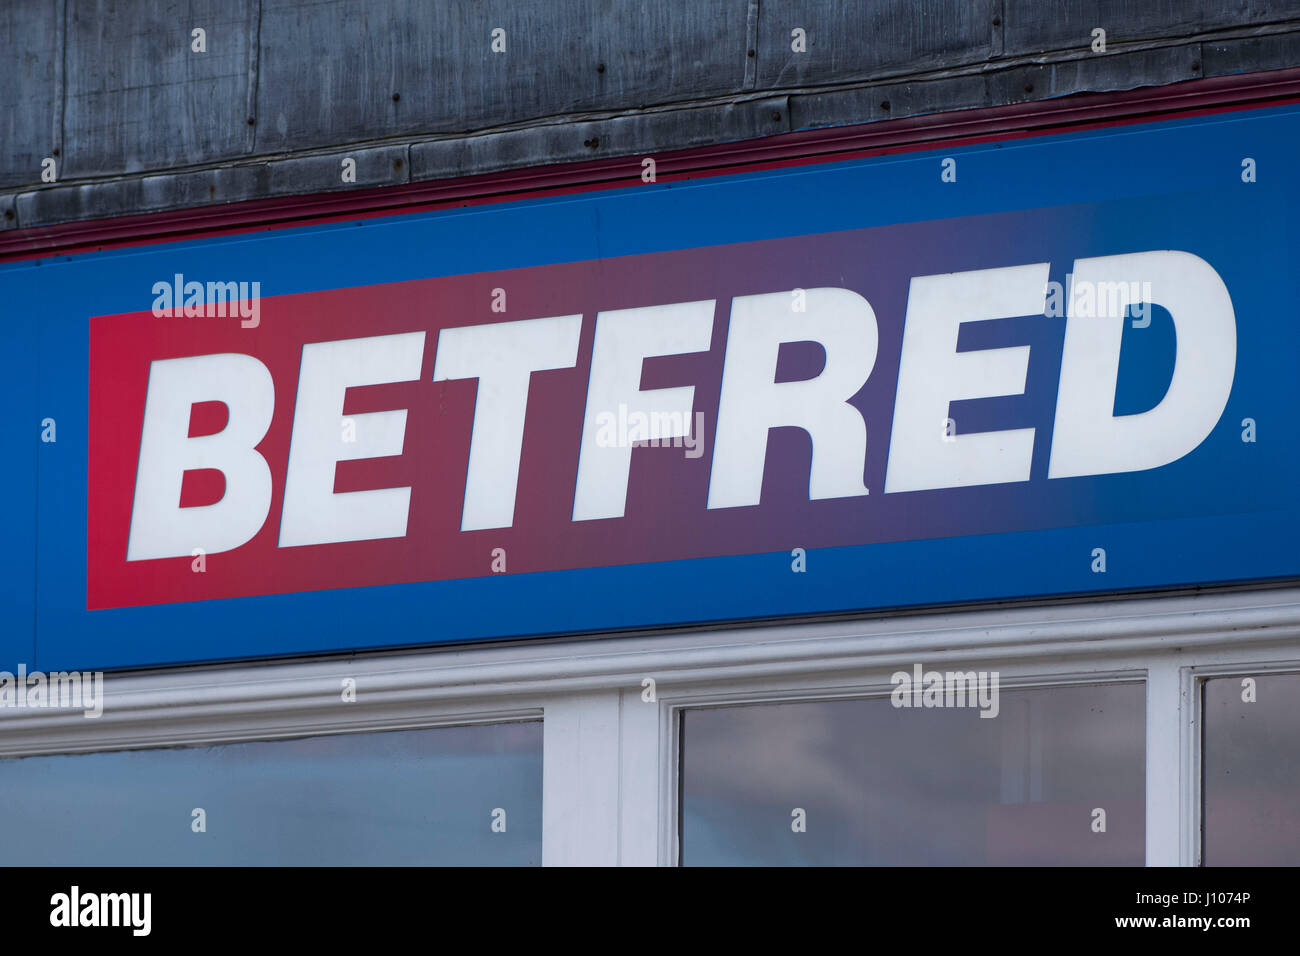 Betfred bookies sign logo. - Stock Image